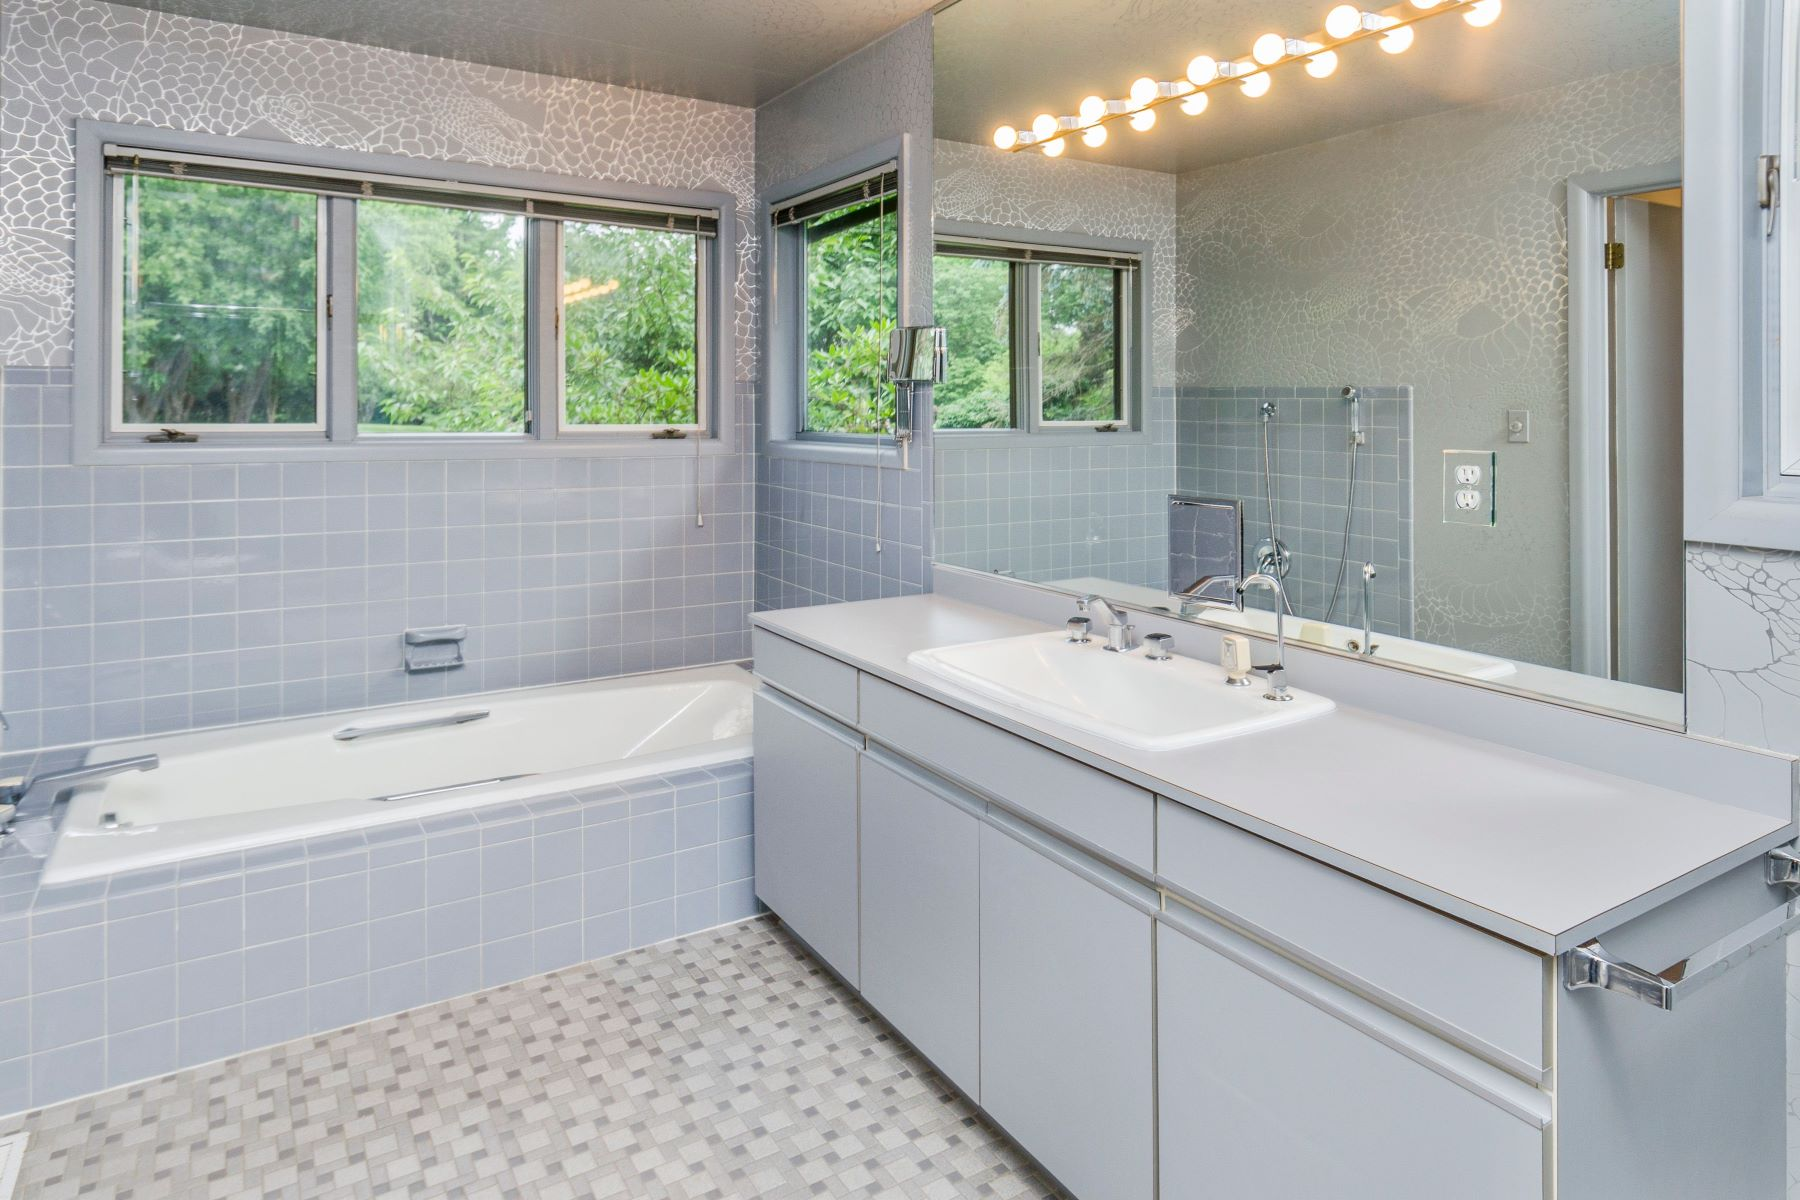 Additional photo for property listing at Single-Level Living That's Both Spacious & Chic 1 Hemlock Court, Princeton, New Jersey 08540 United States